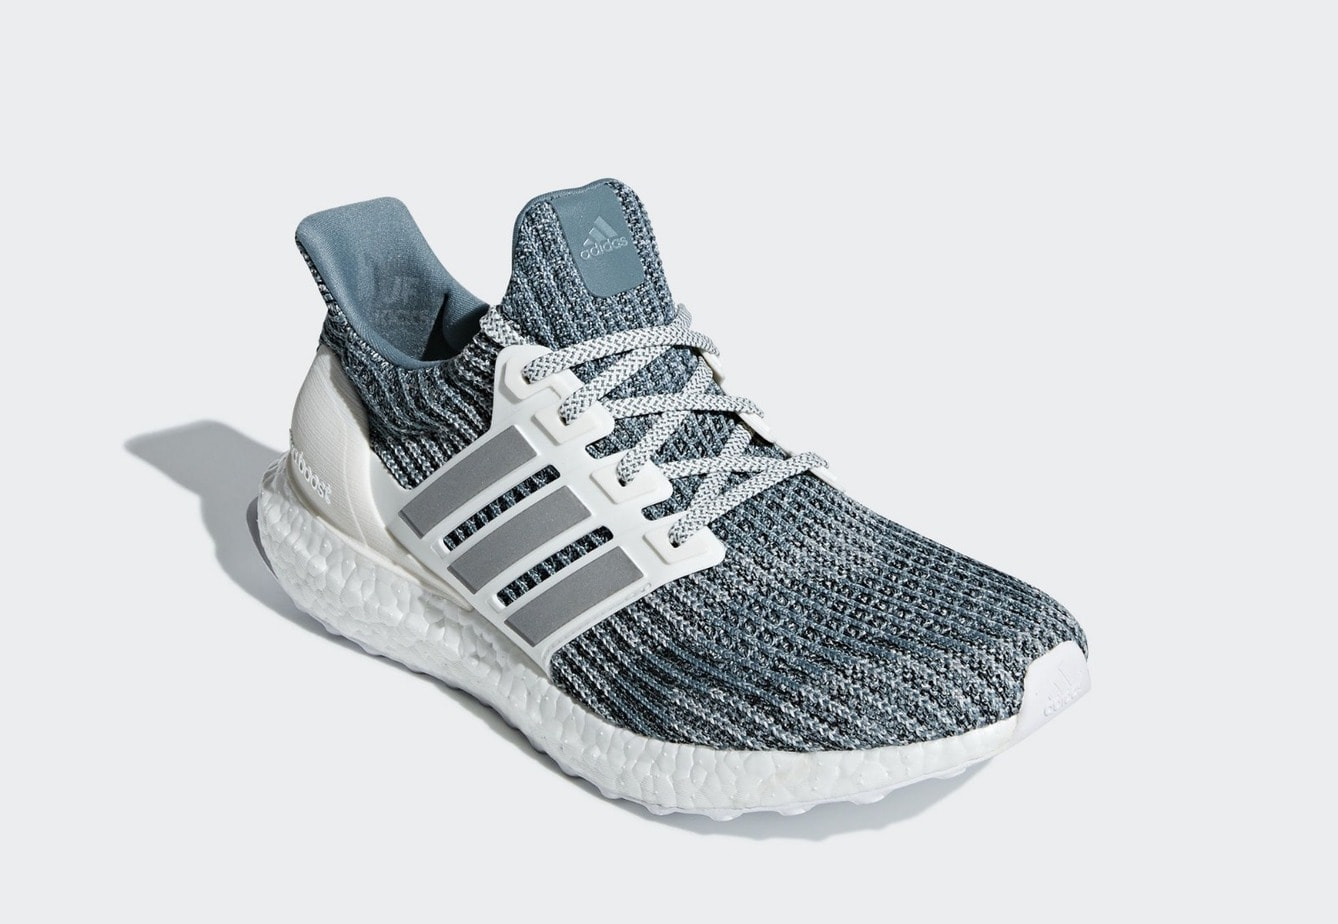 21c6408d7e2de Parley and adidas Upgrade Their Recycled Ultra Boost With Silver ...